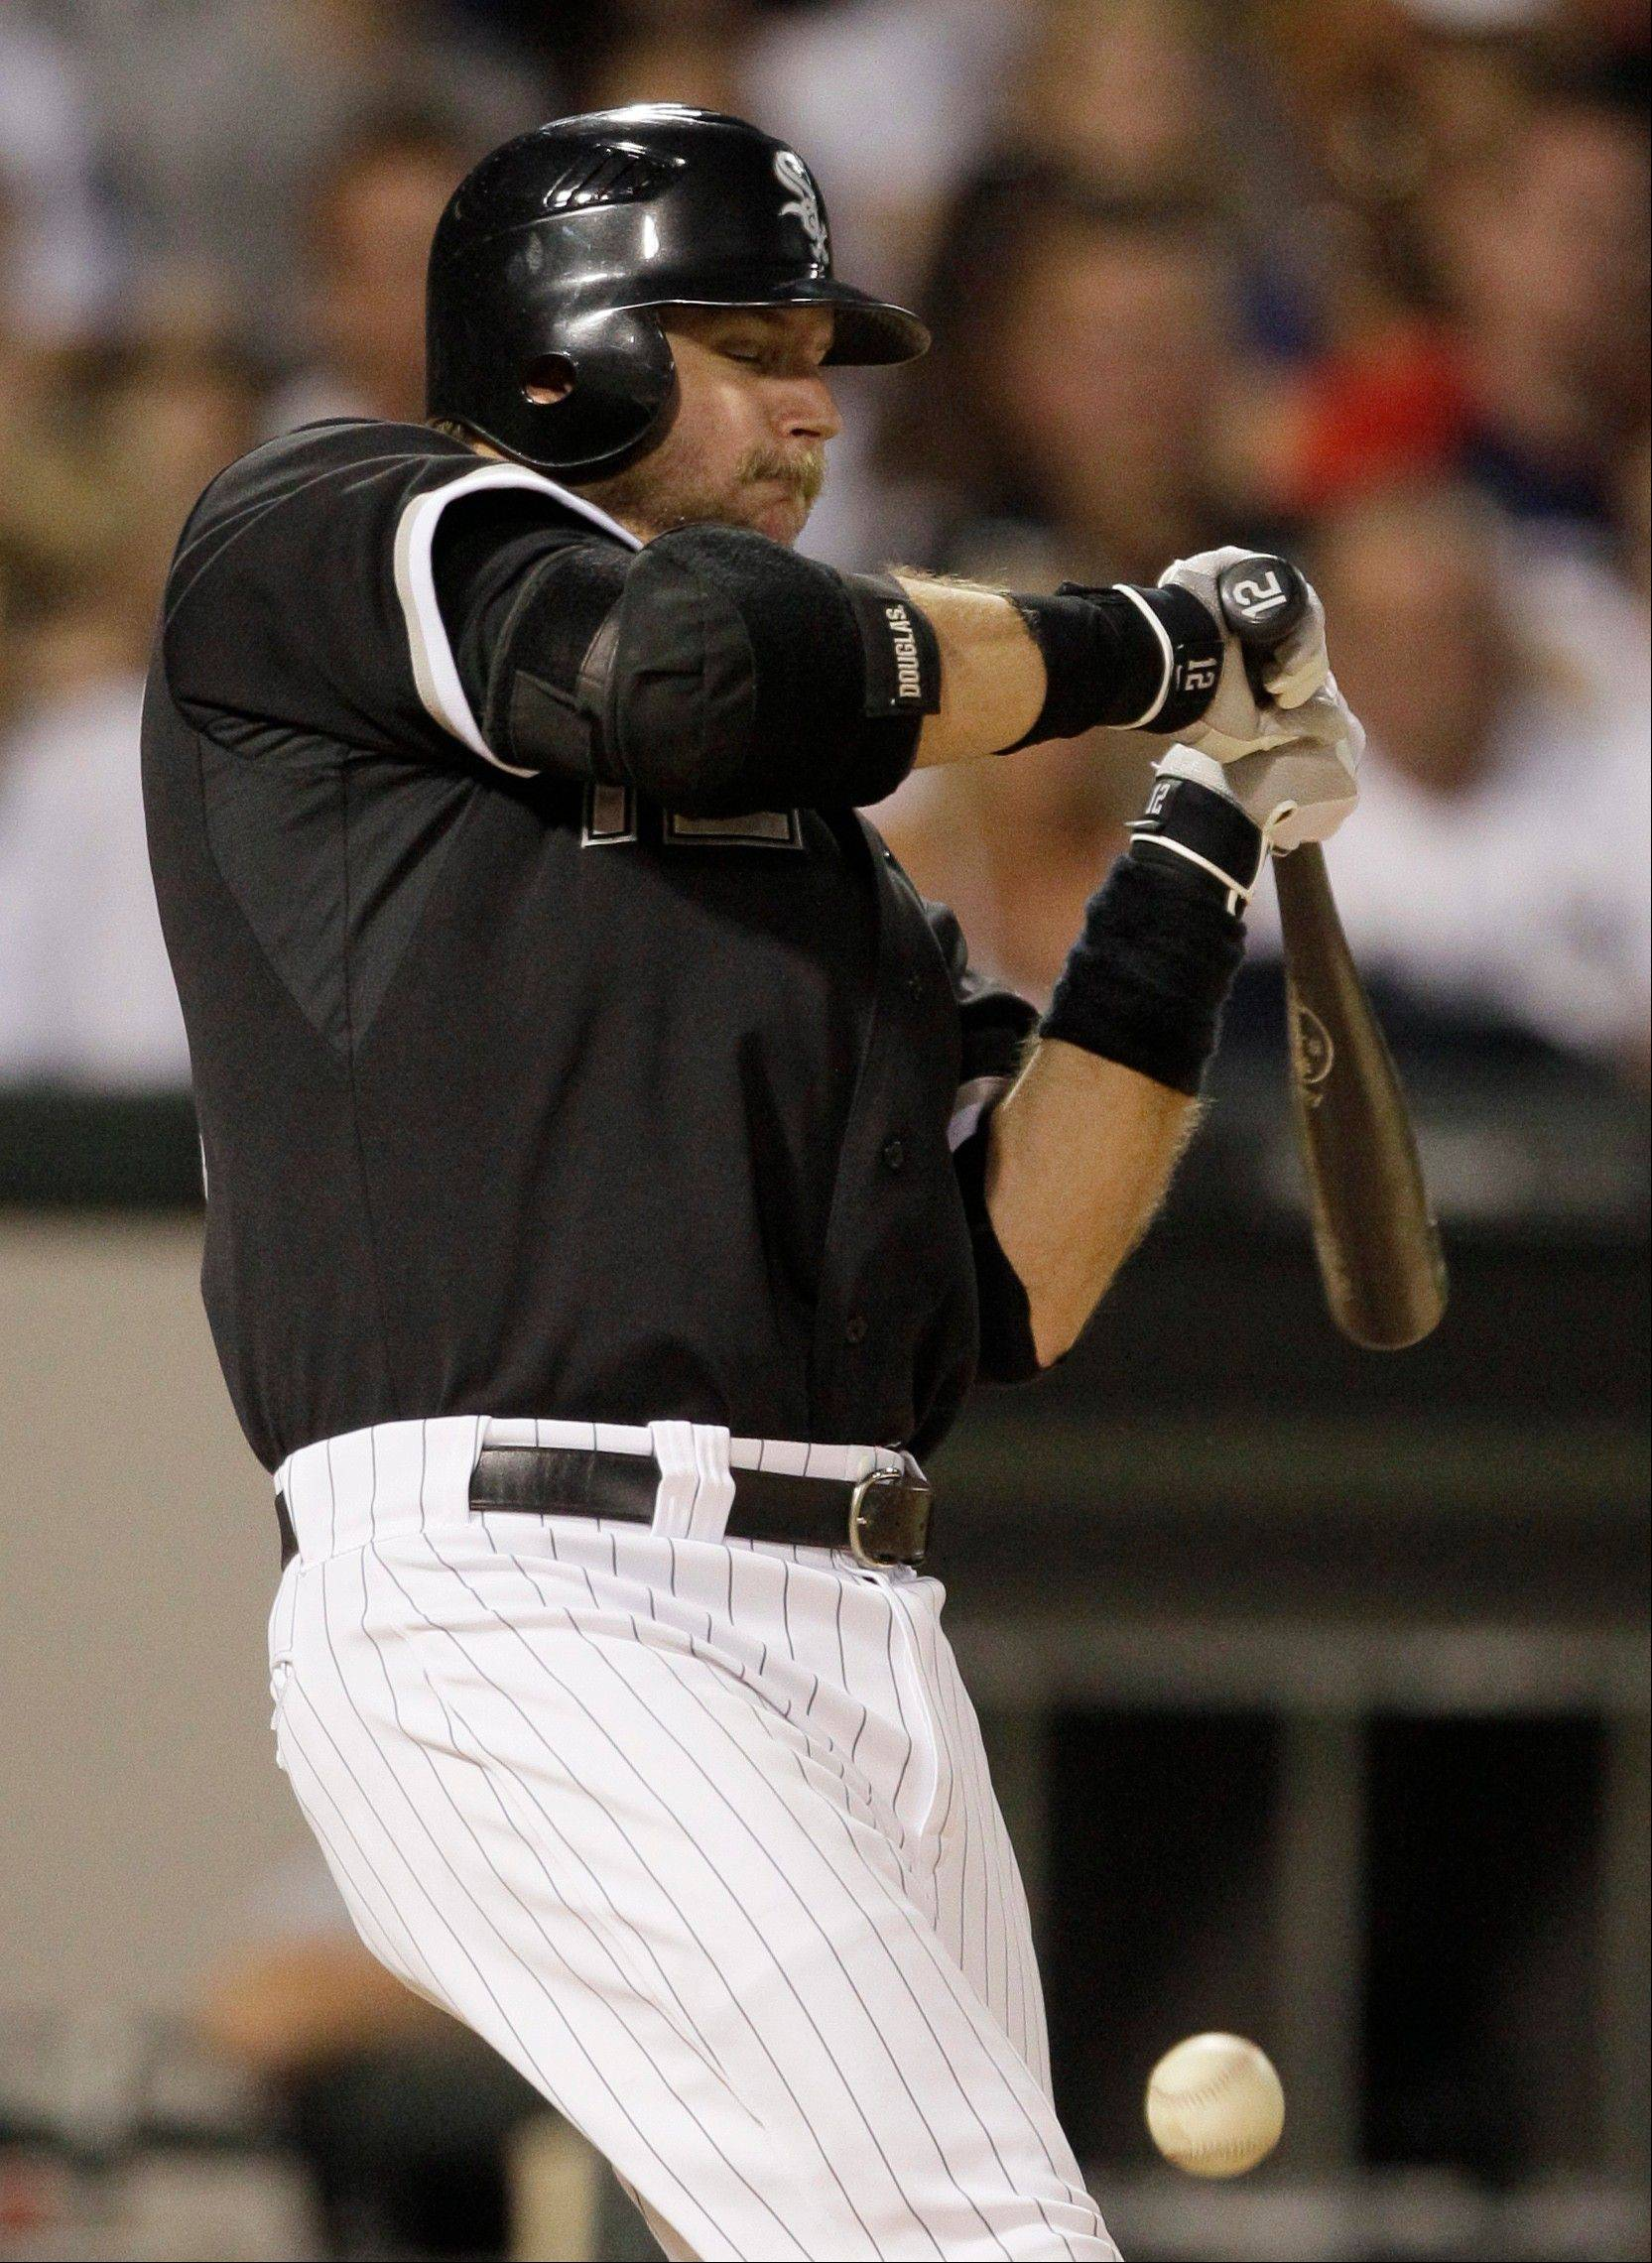 White Sox catcher A.J. Pierzynski reacts to getting hit by a pitch from Kansas City Royals starter Bruce Chen last Friday. The team put Pierzynski on the 15-day disabled list with a fractured left wrist.